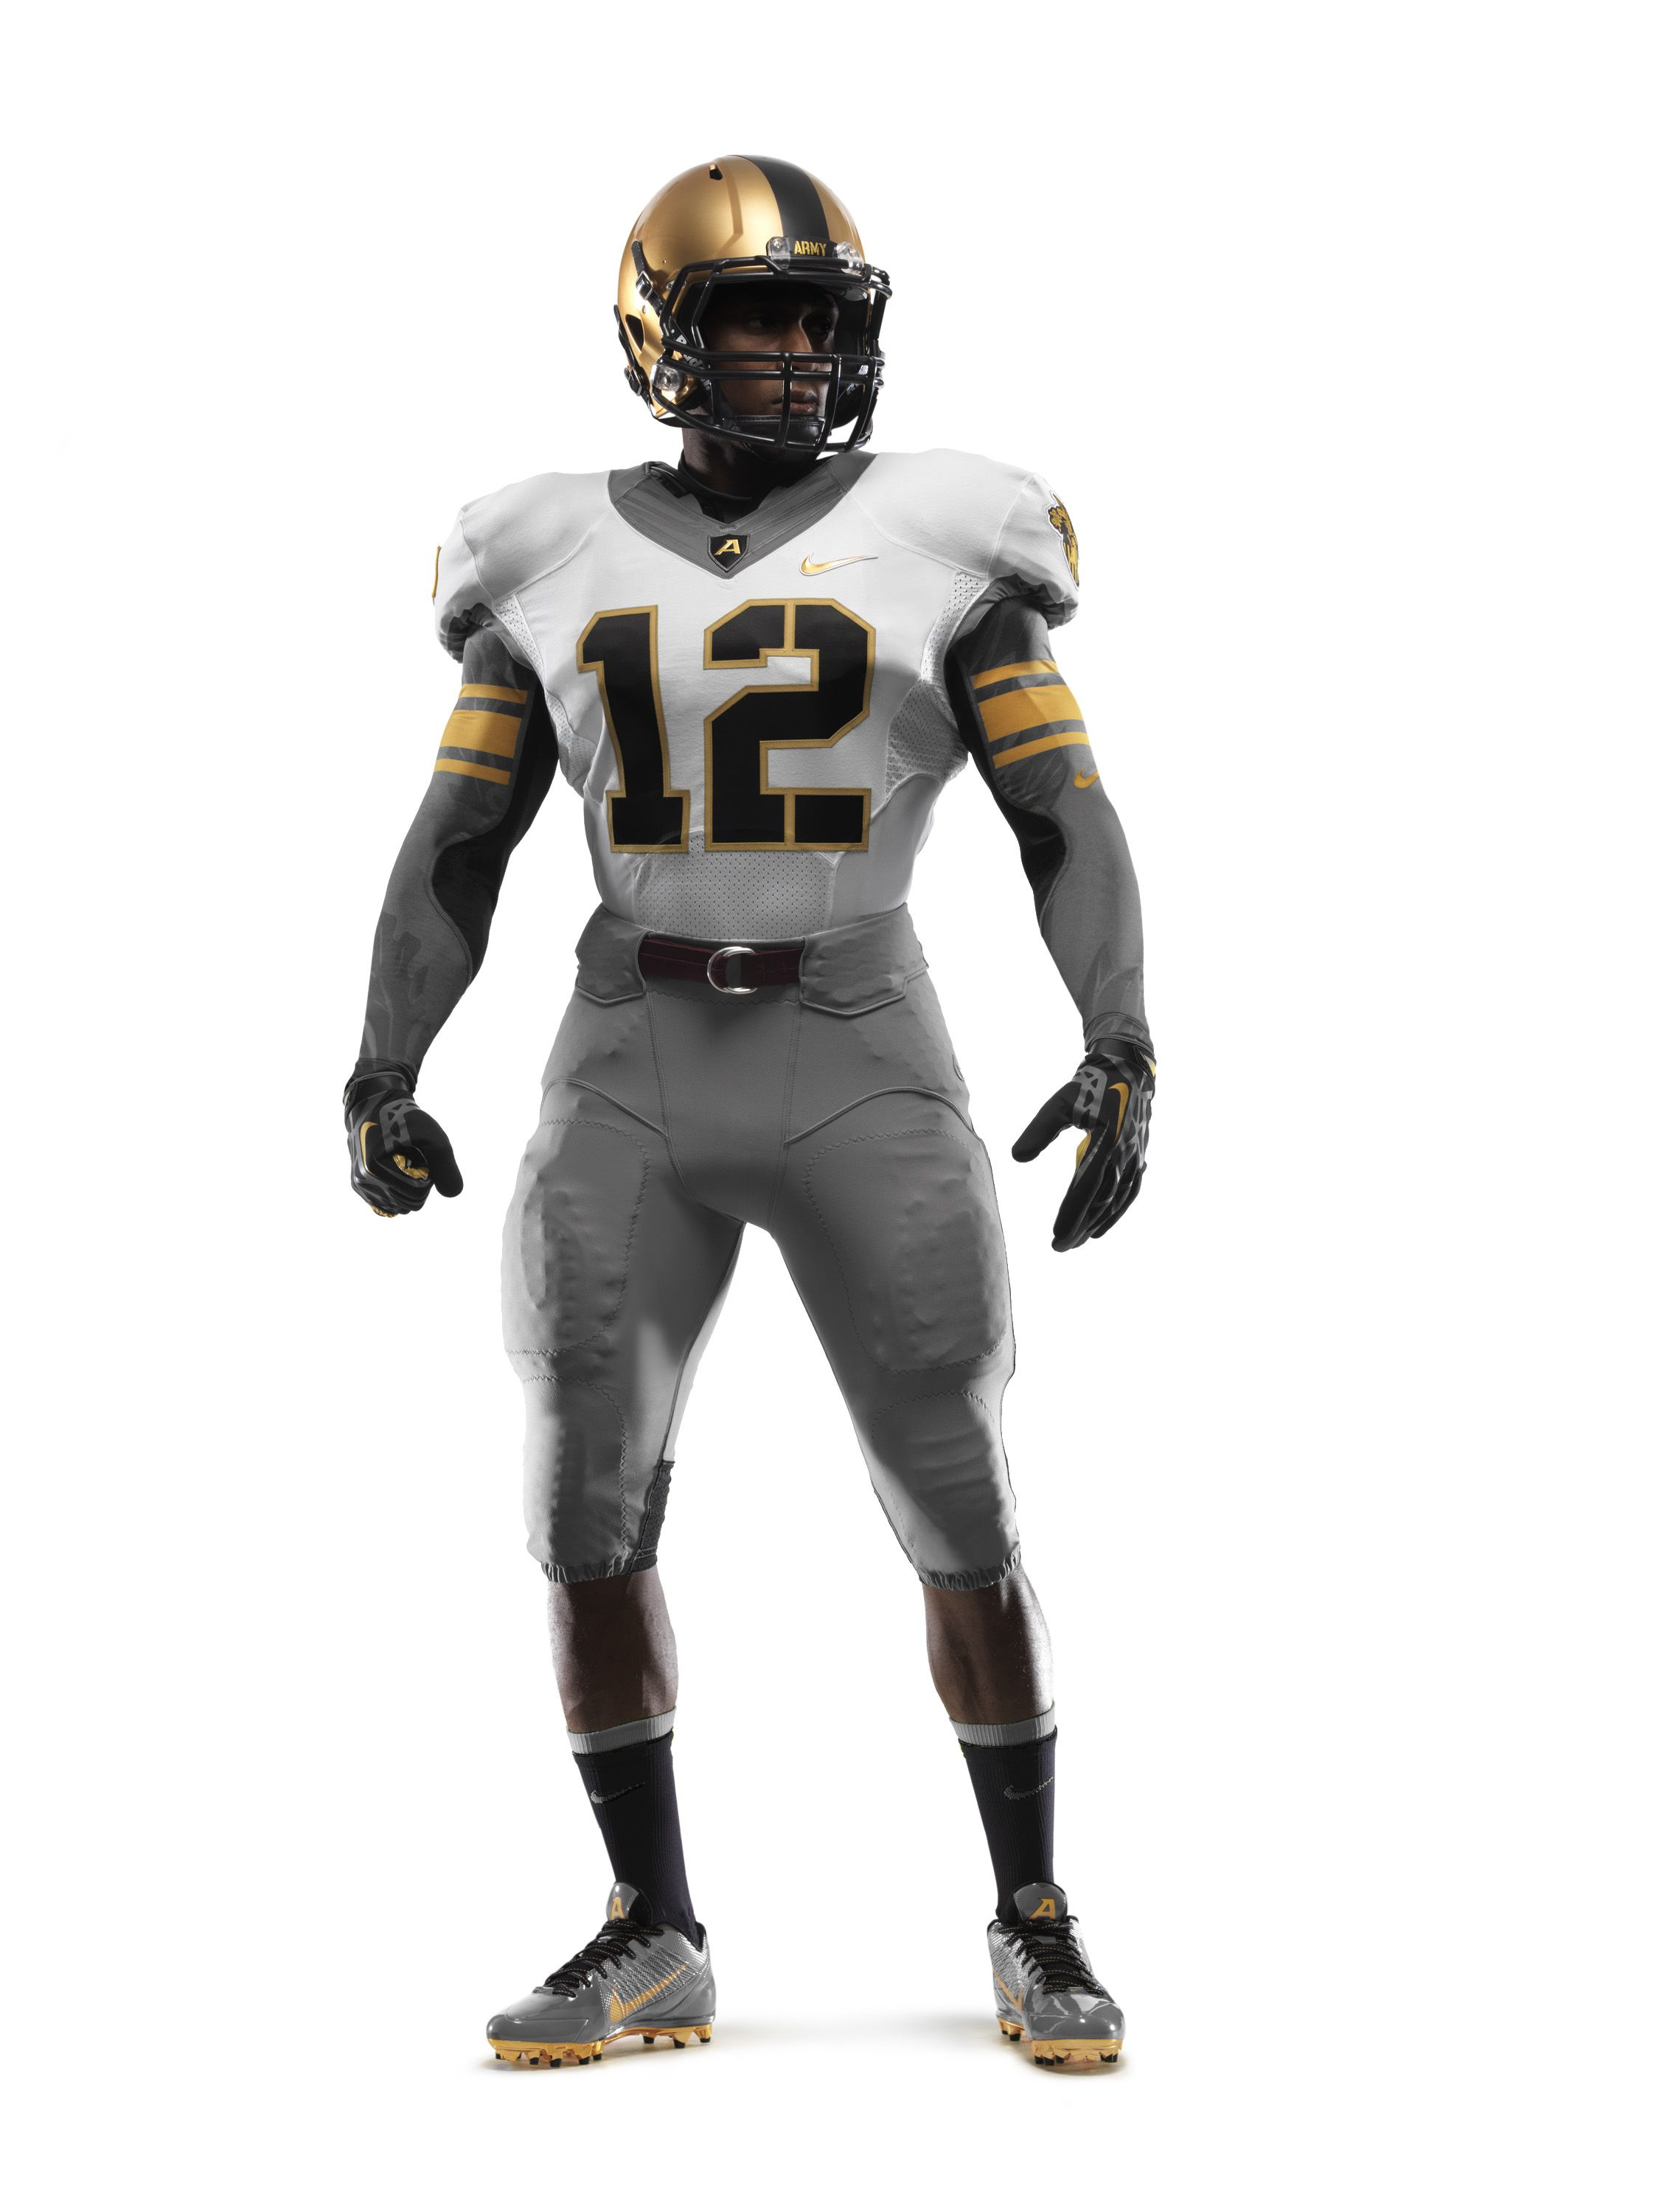 Army Black Knights 2019 special football uniforms for Army